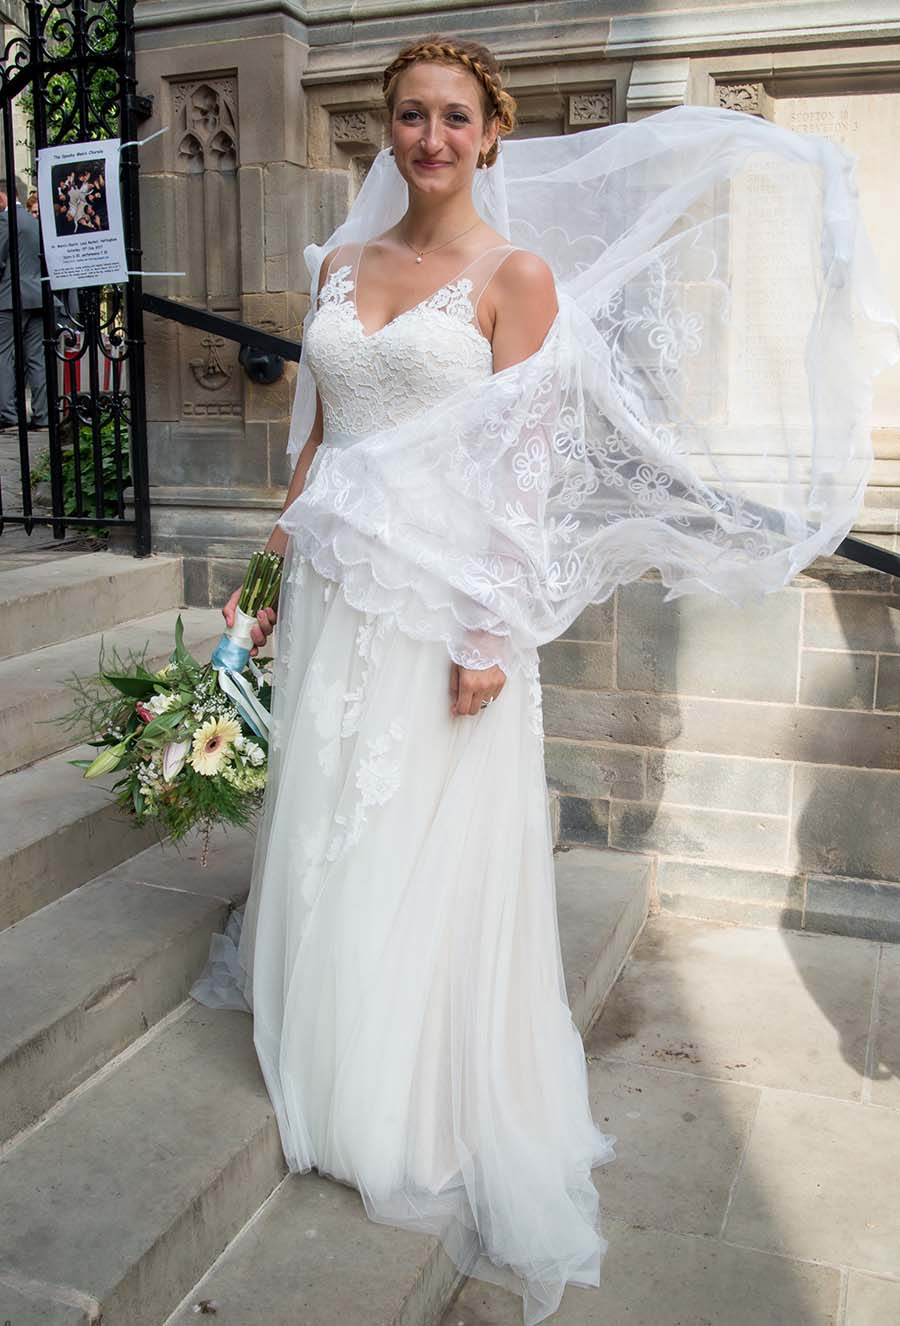 b0f85fb66cfc and the bride wore her great-grandmother's wedding veil | Buckinghams